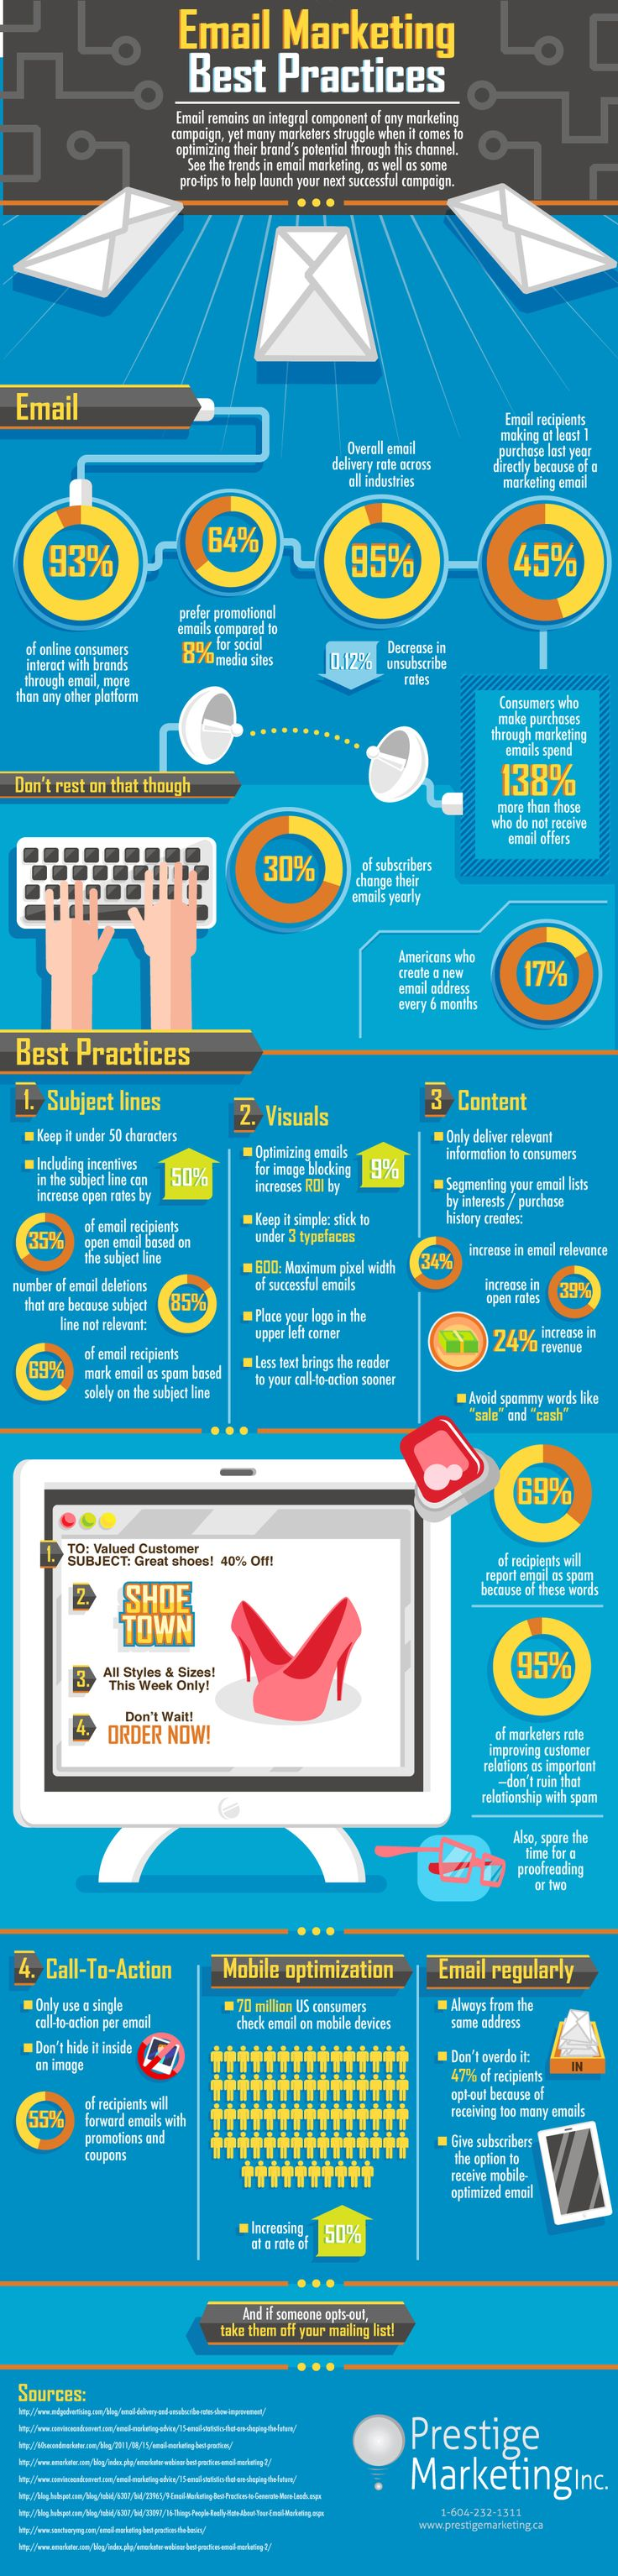 #Email #Marketing Best Practices - it's all in this #Infographic !